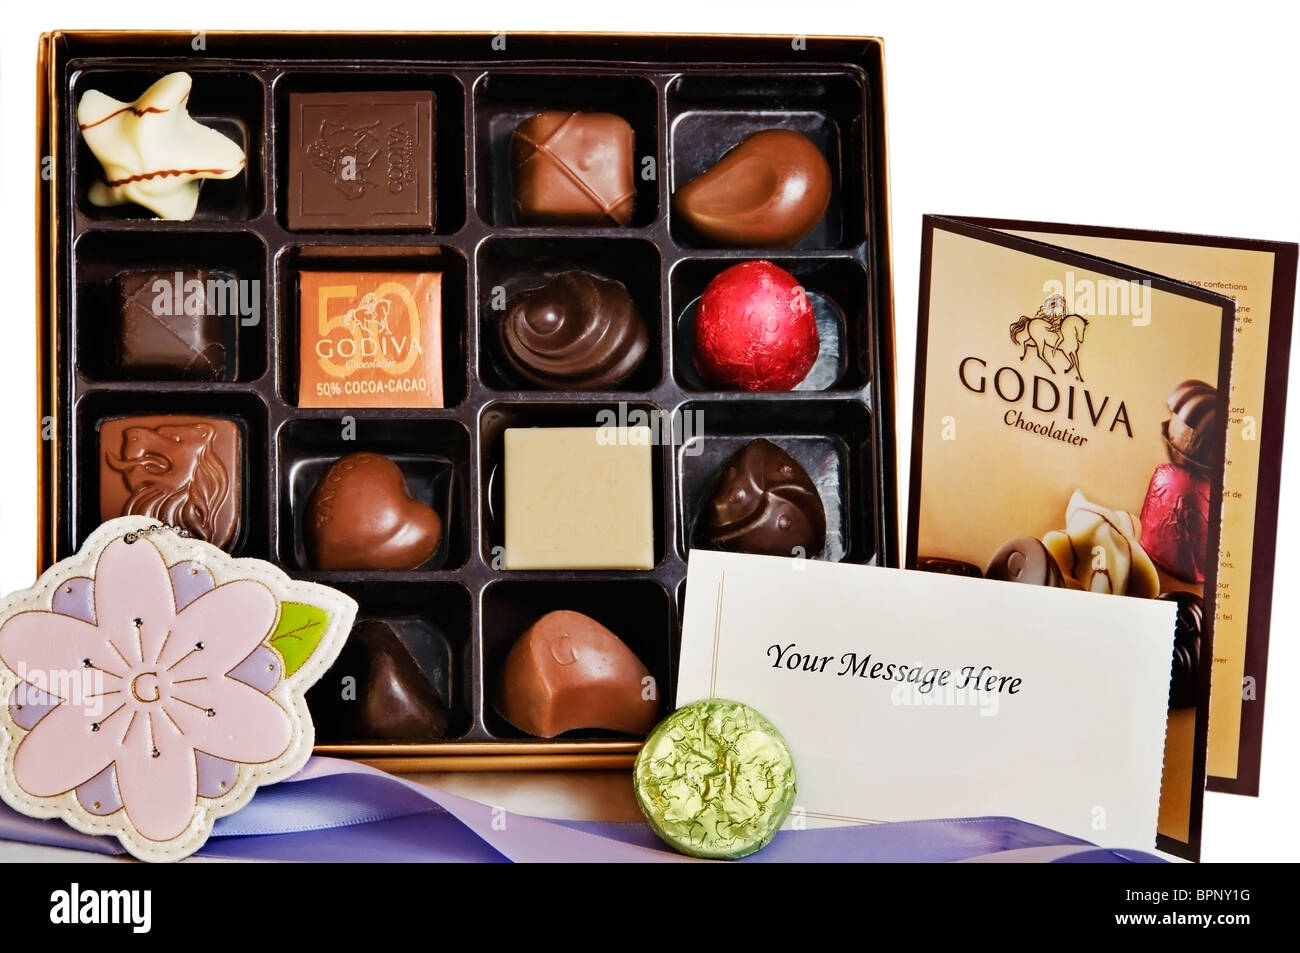 An open gift box of gourmet Godiva chocolates and truffles displayed after being unwrapped. Stock Photo